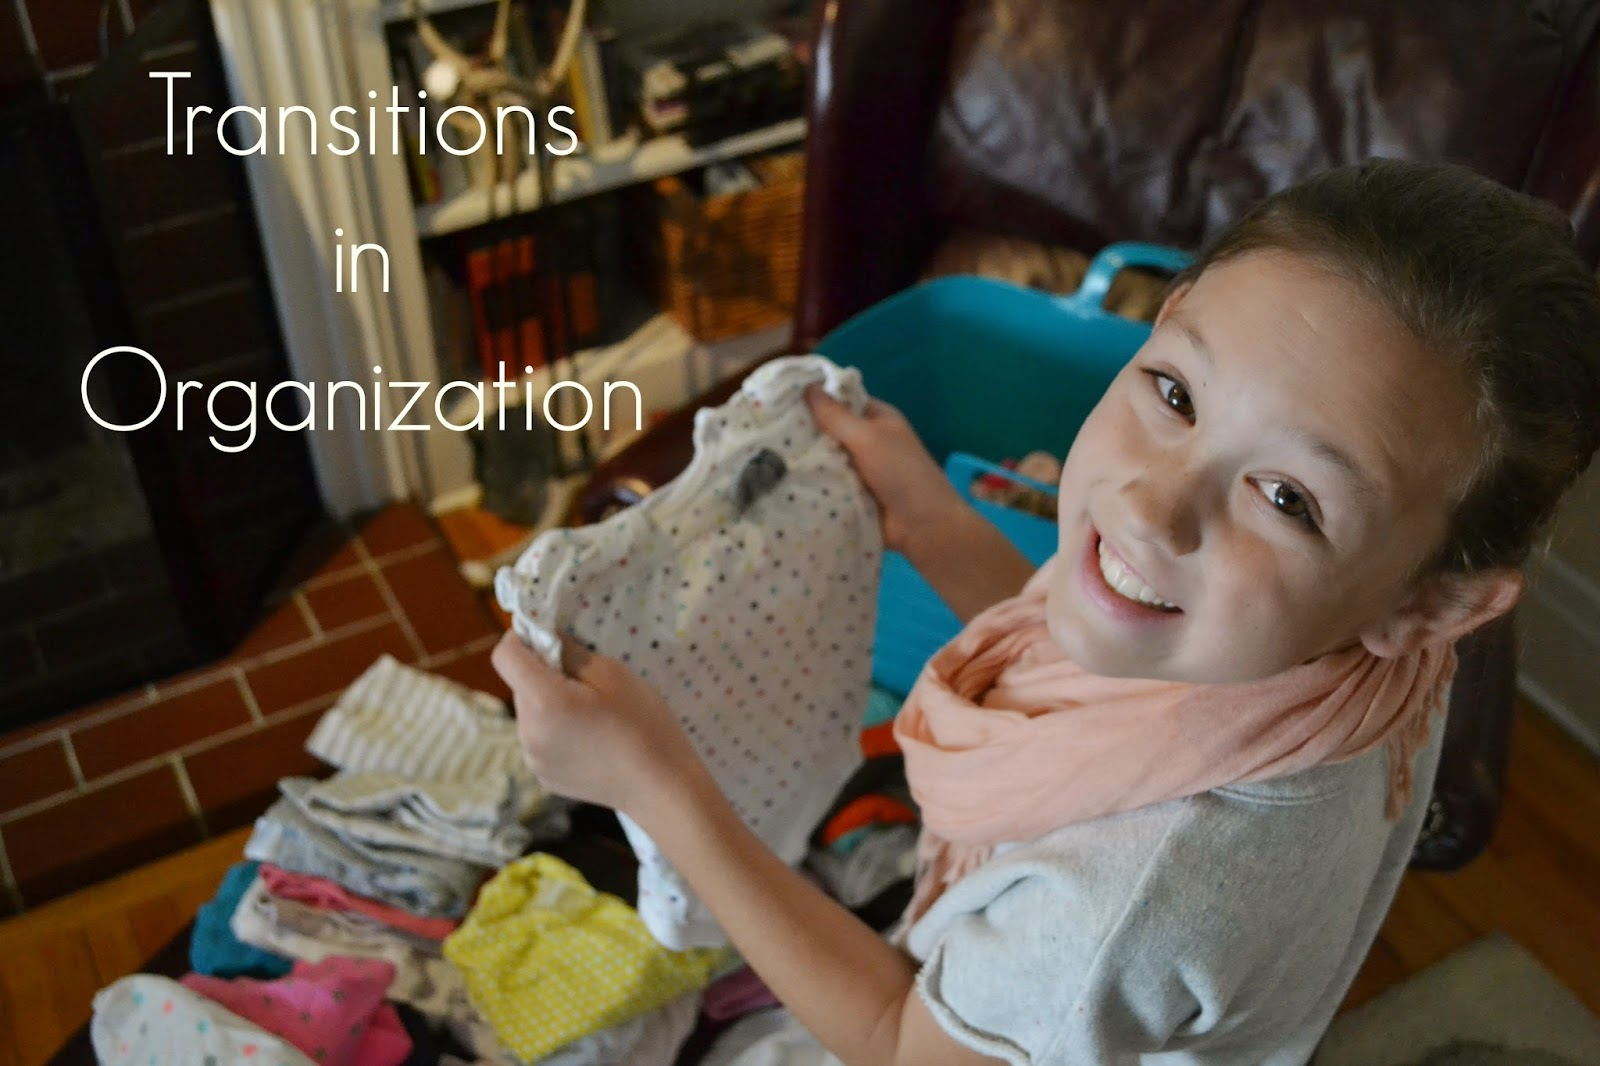 Transitions in Organization - for kids from 1-18 :: OrganizingMadeFun.com